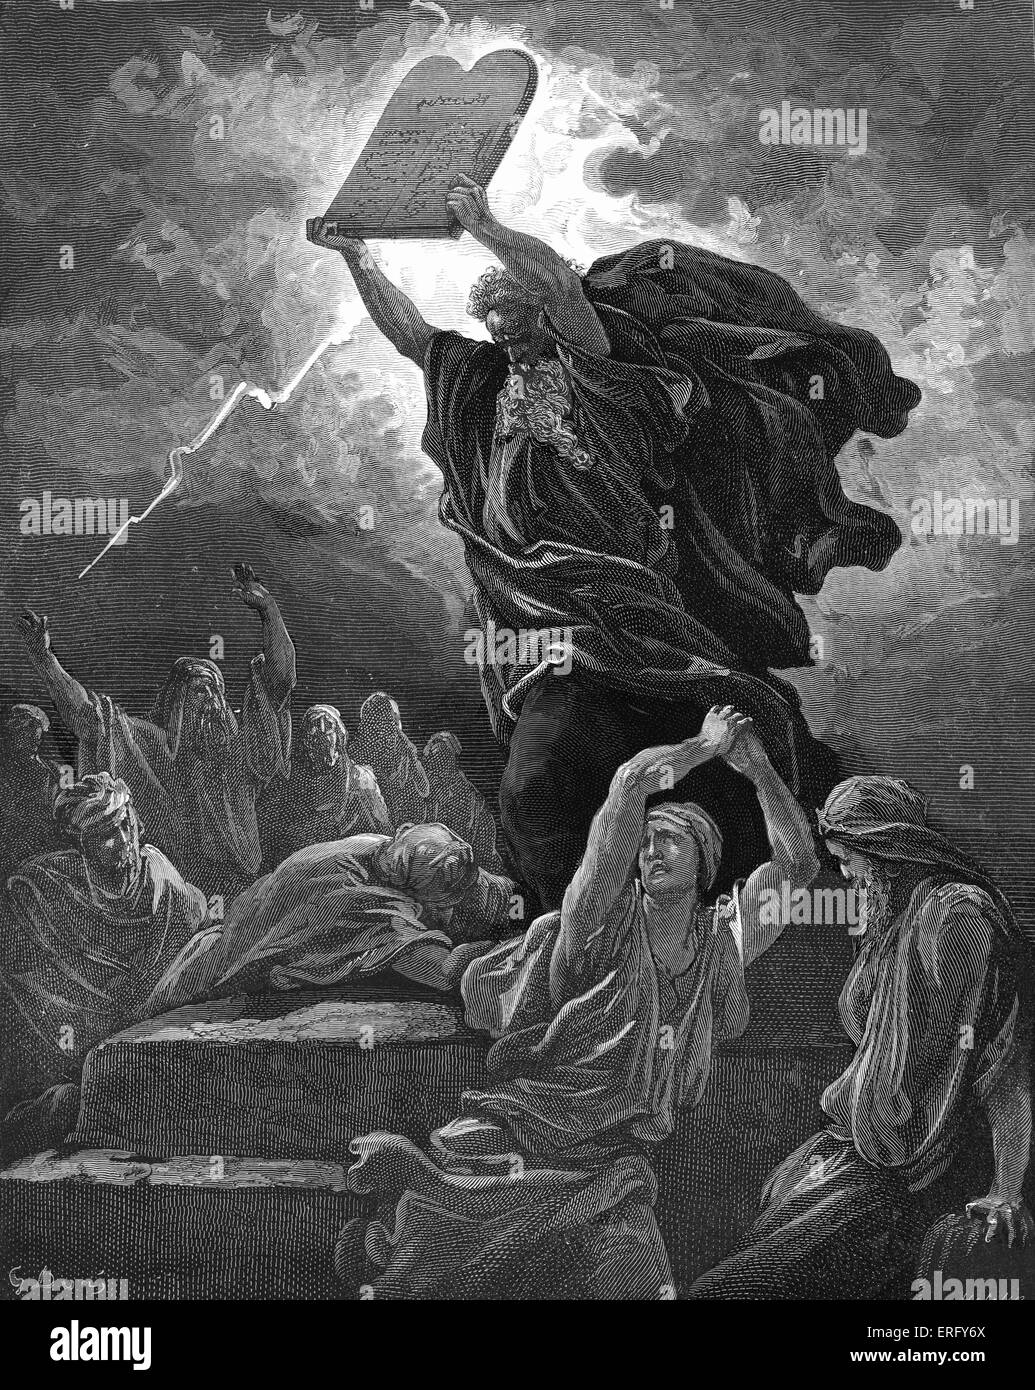 Moses breaks the tablets of the law after coming down from Mount Sinai and finding the children of Israel worshipping - Stock Image